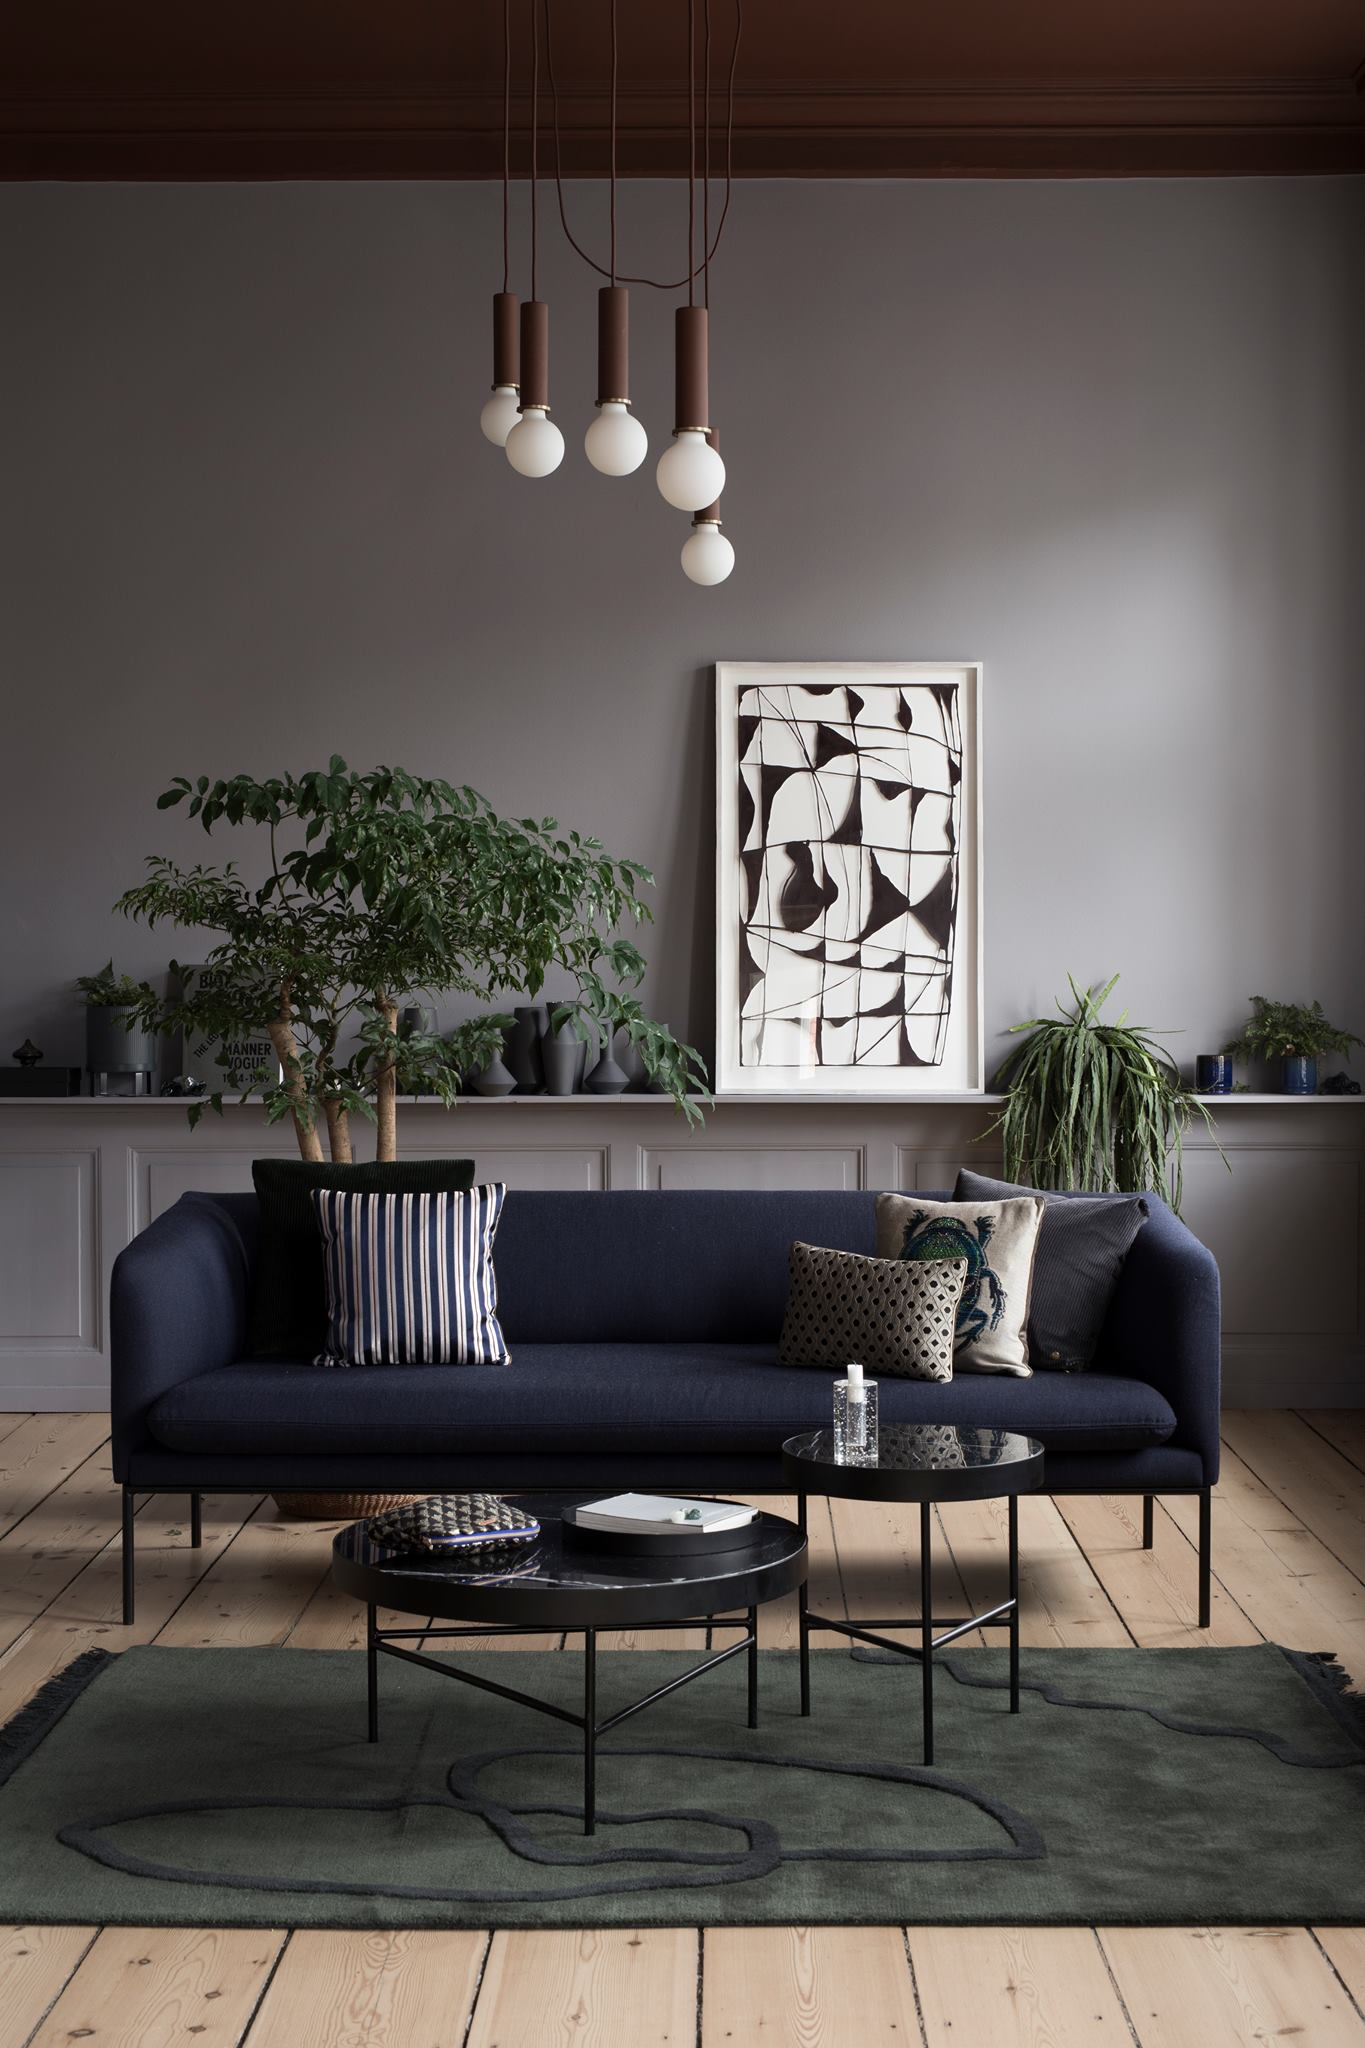 Introducing ferm living enquiries welcome